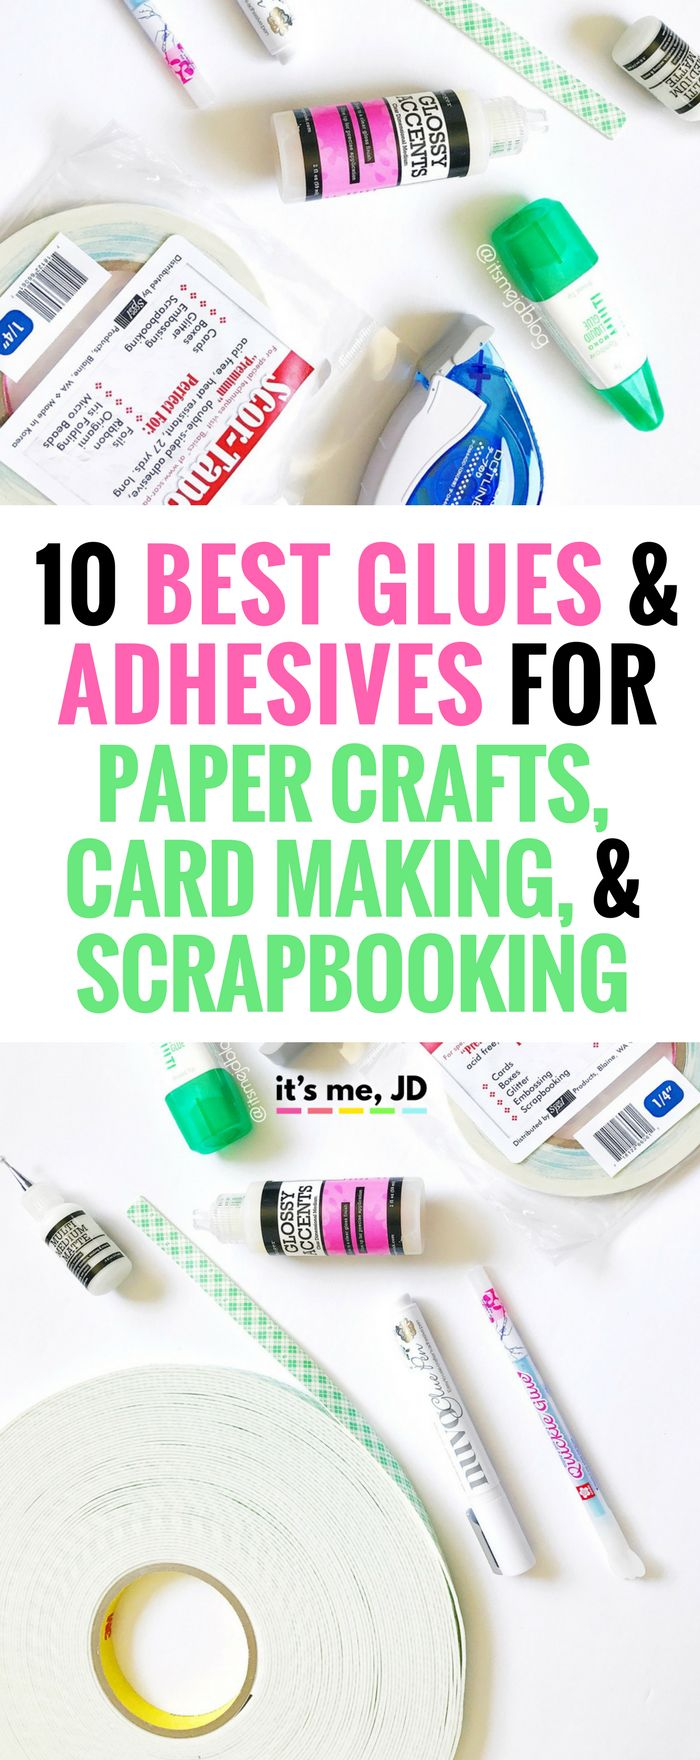 Best Adhesives for Paper Crafts, Card Making, and Scrapbooking, DIY, Handmade, Tips